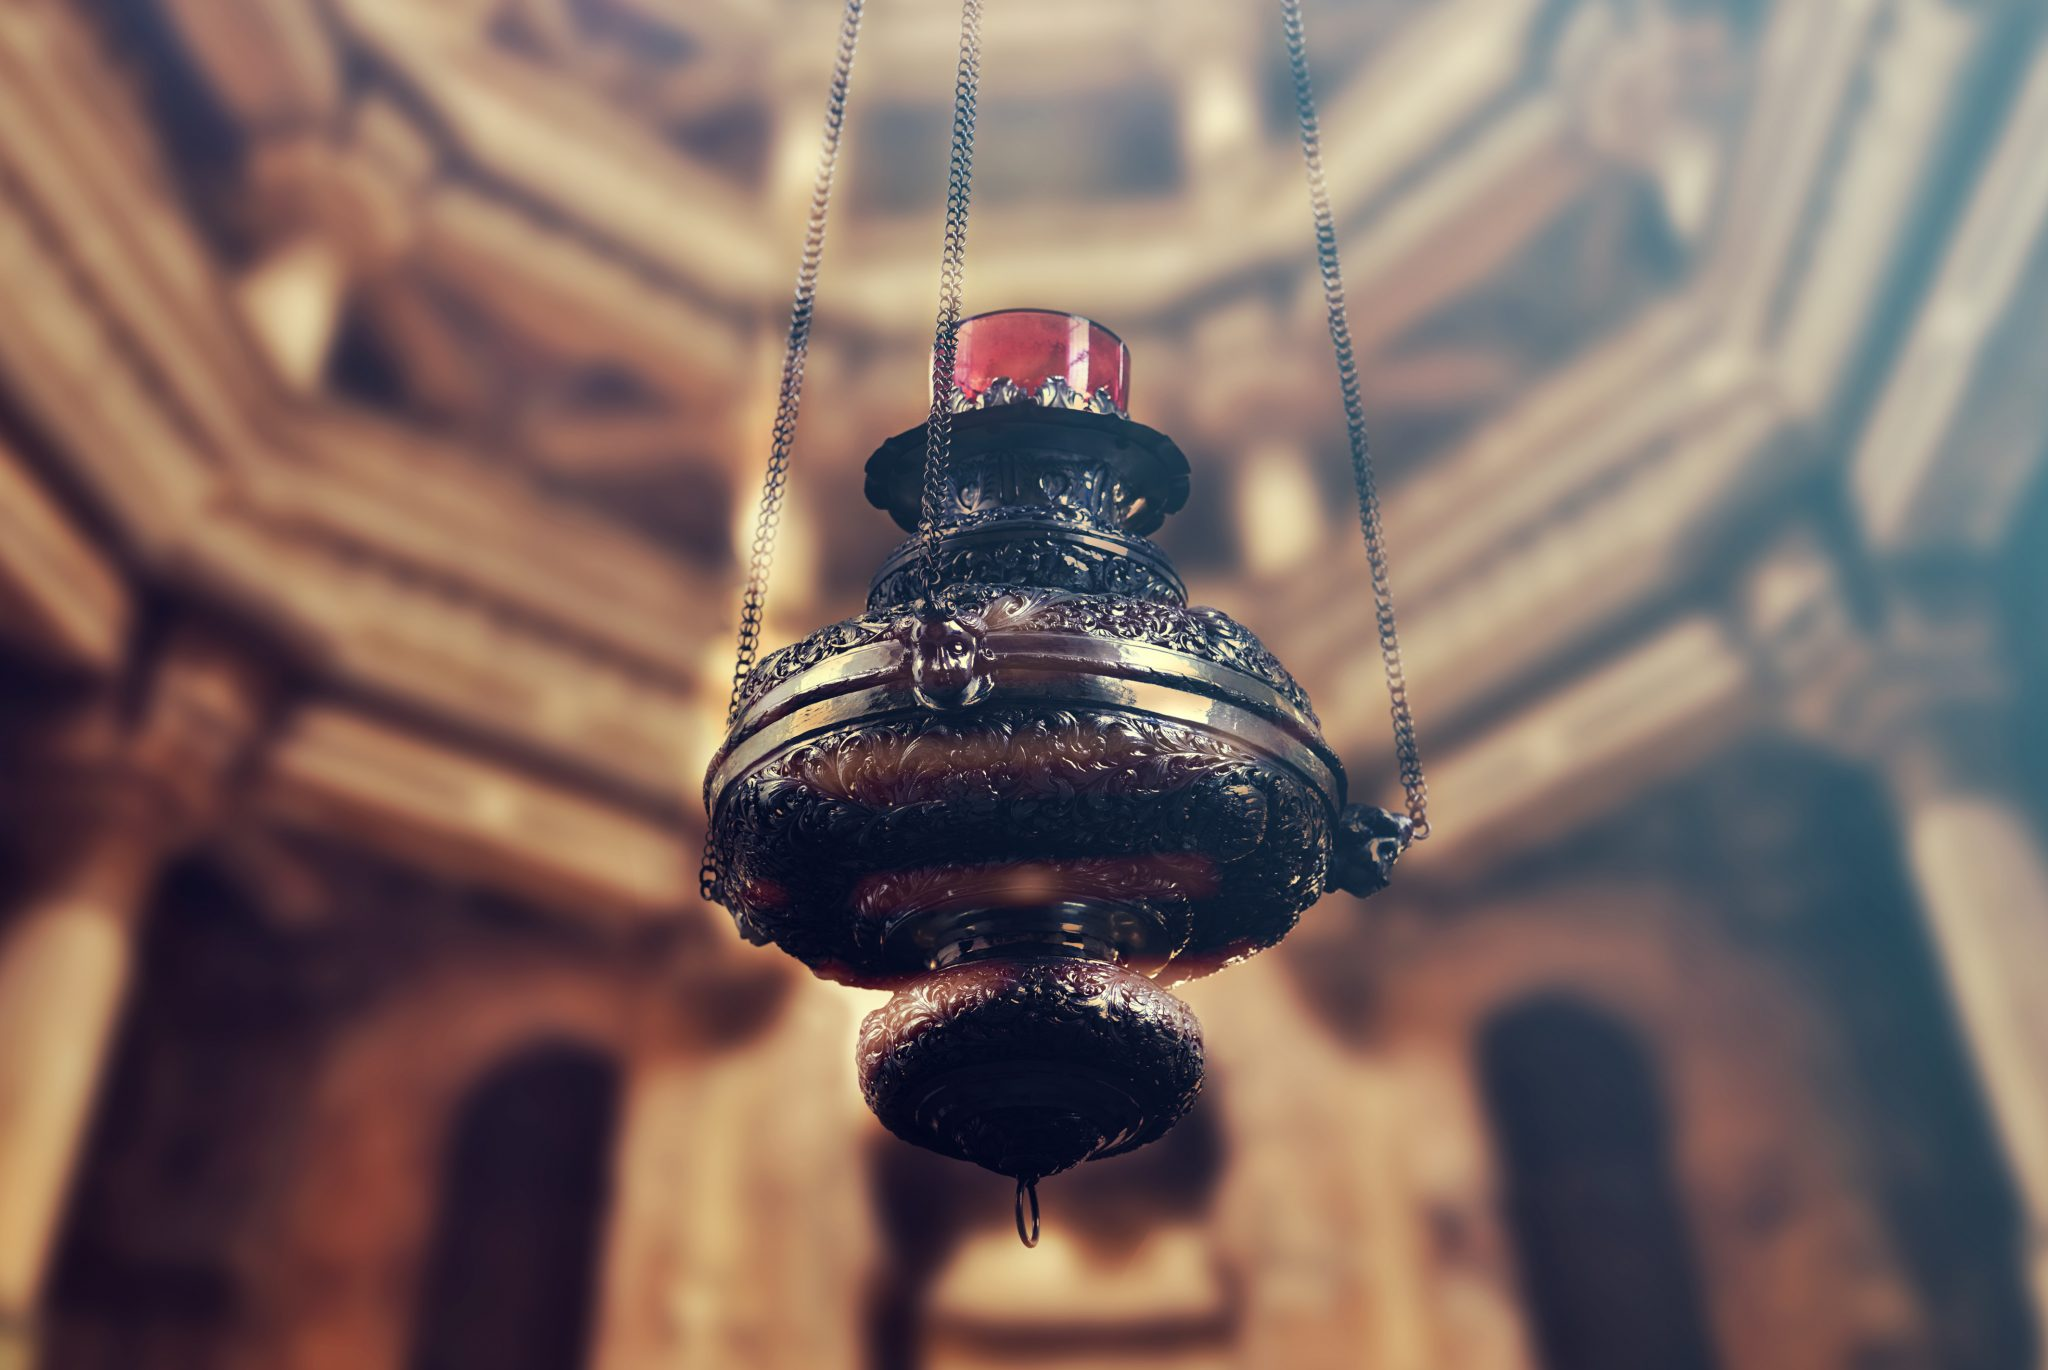 Antique Incense Burner In The Church In Retro Light Censer Hanging In The Meditation Temple 1065537110 4256x2848 Diocese Of Venice